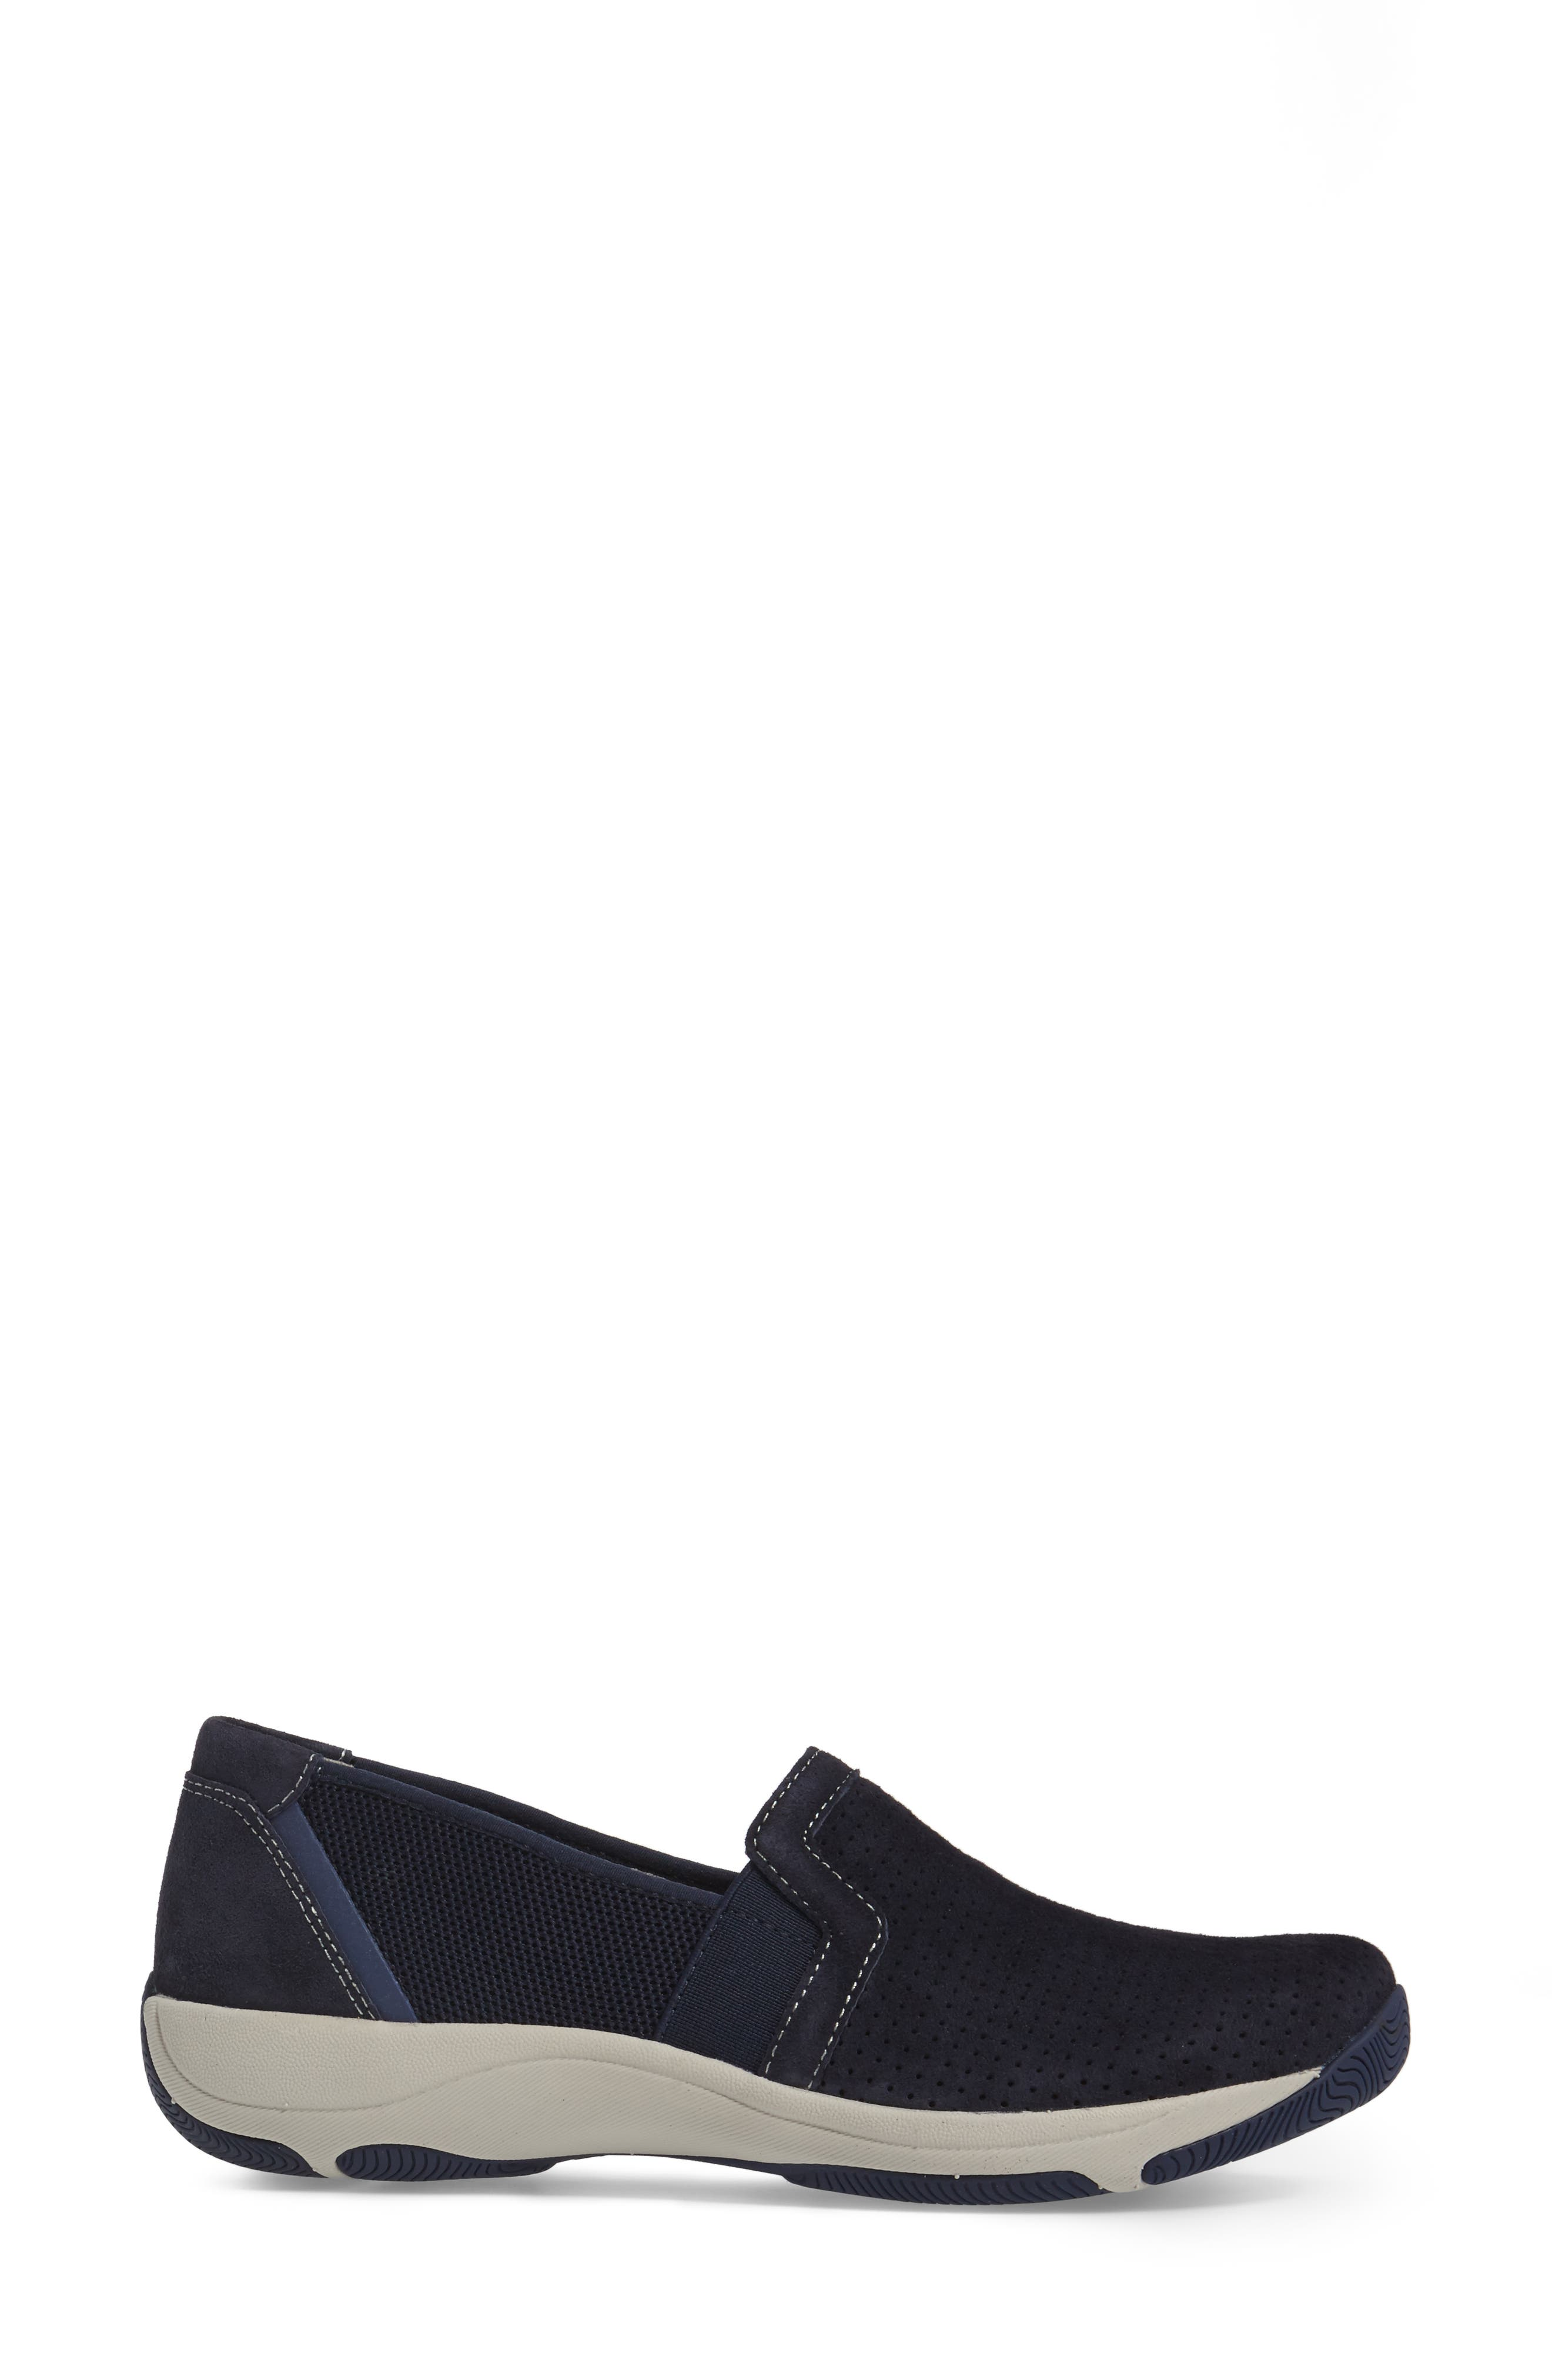 Halifax Collection Halle Slip-On Sneaker,                             Alternate thumbnail 3, color,                             Navy Suede